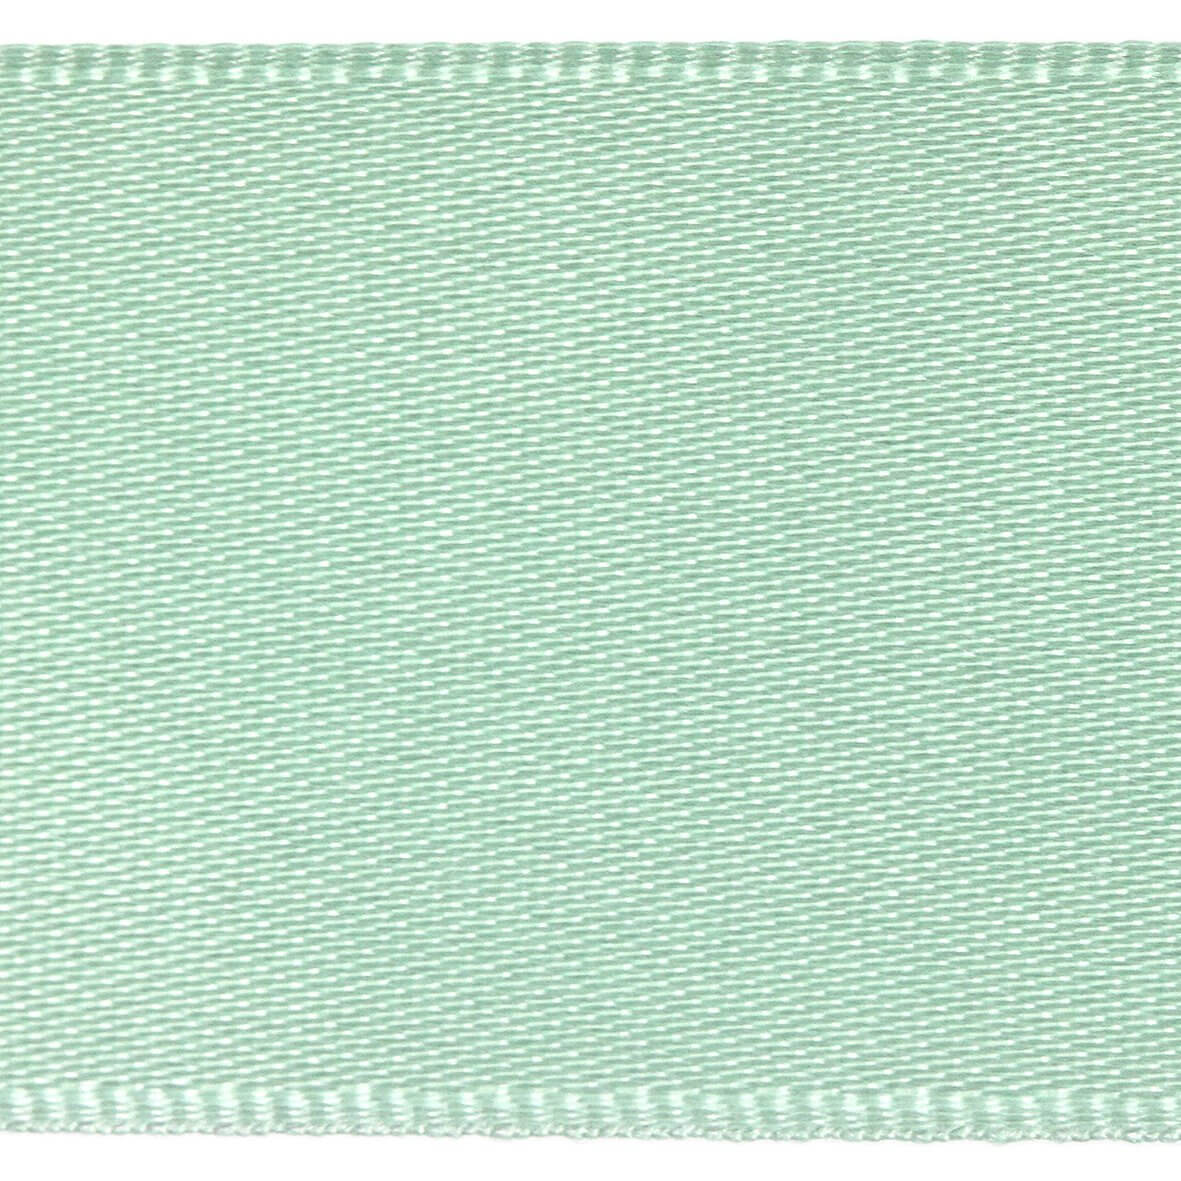 10mm Berisfords Satin Ribbon - Mint Colour 56